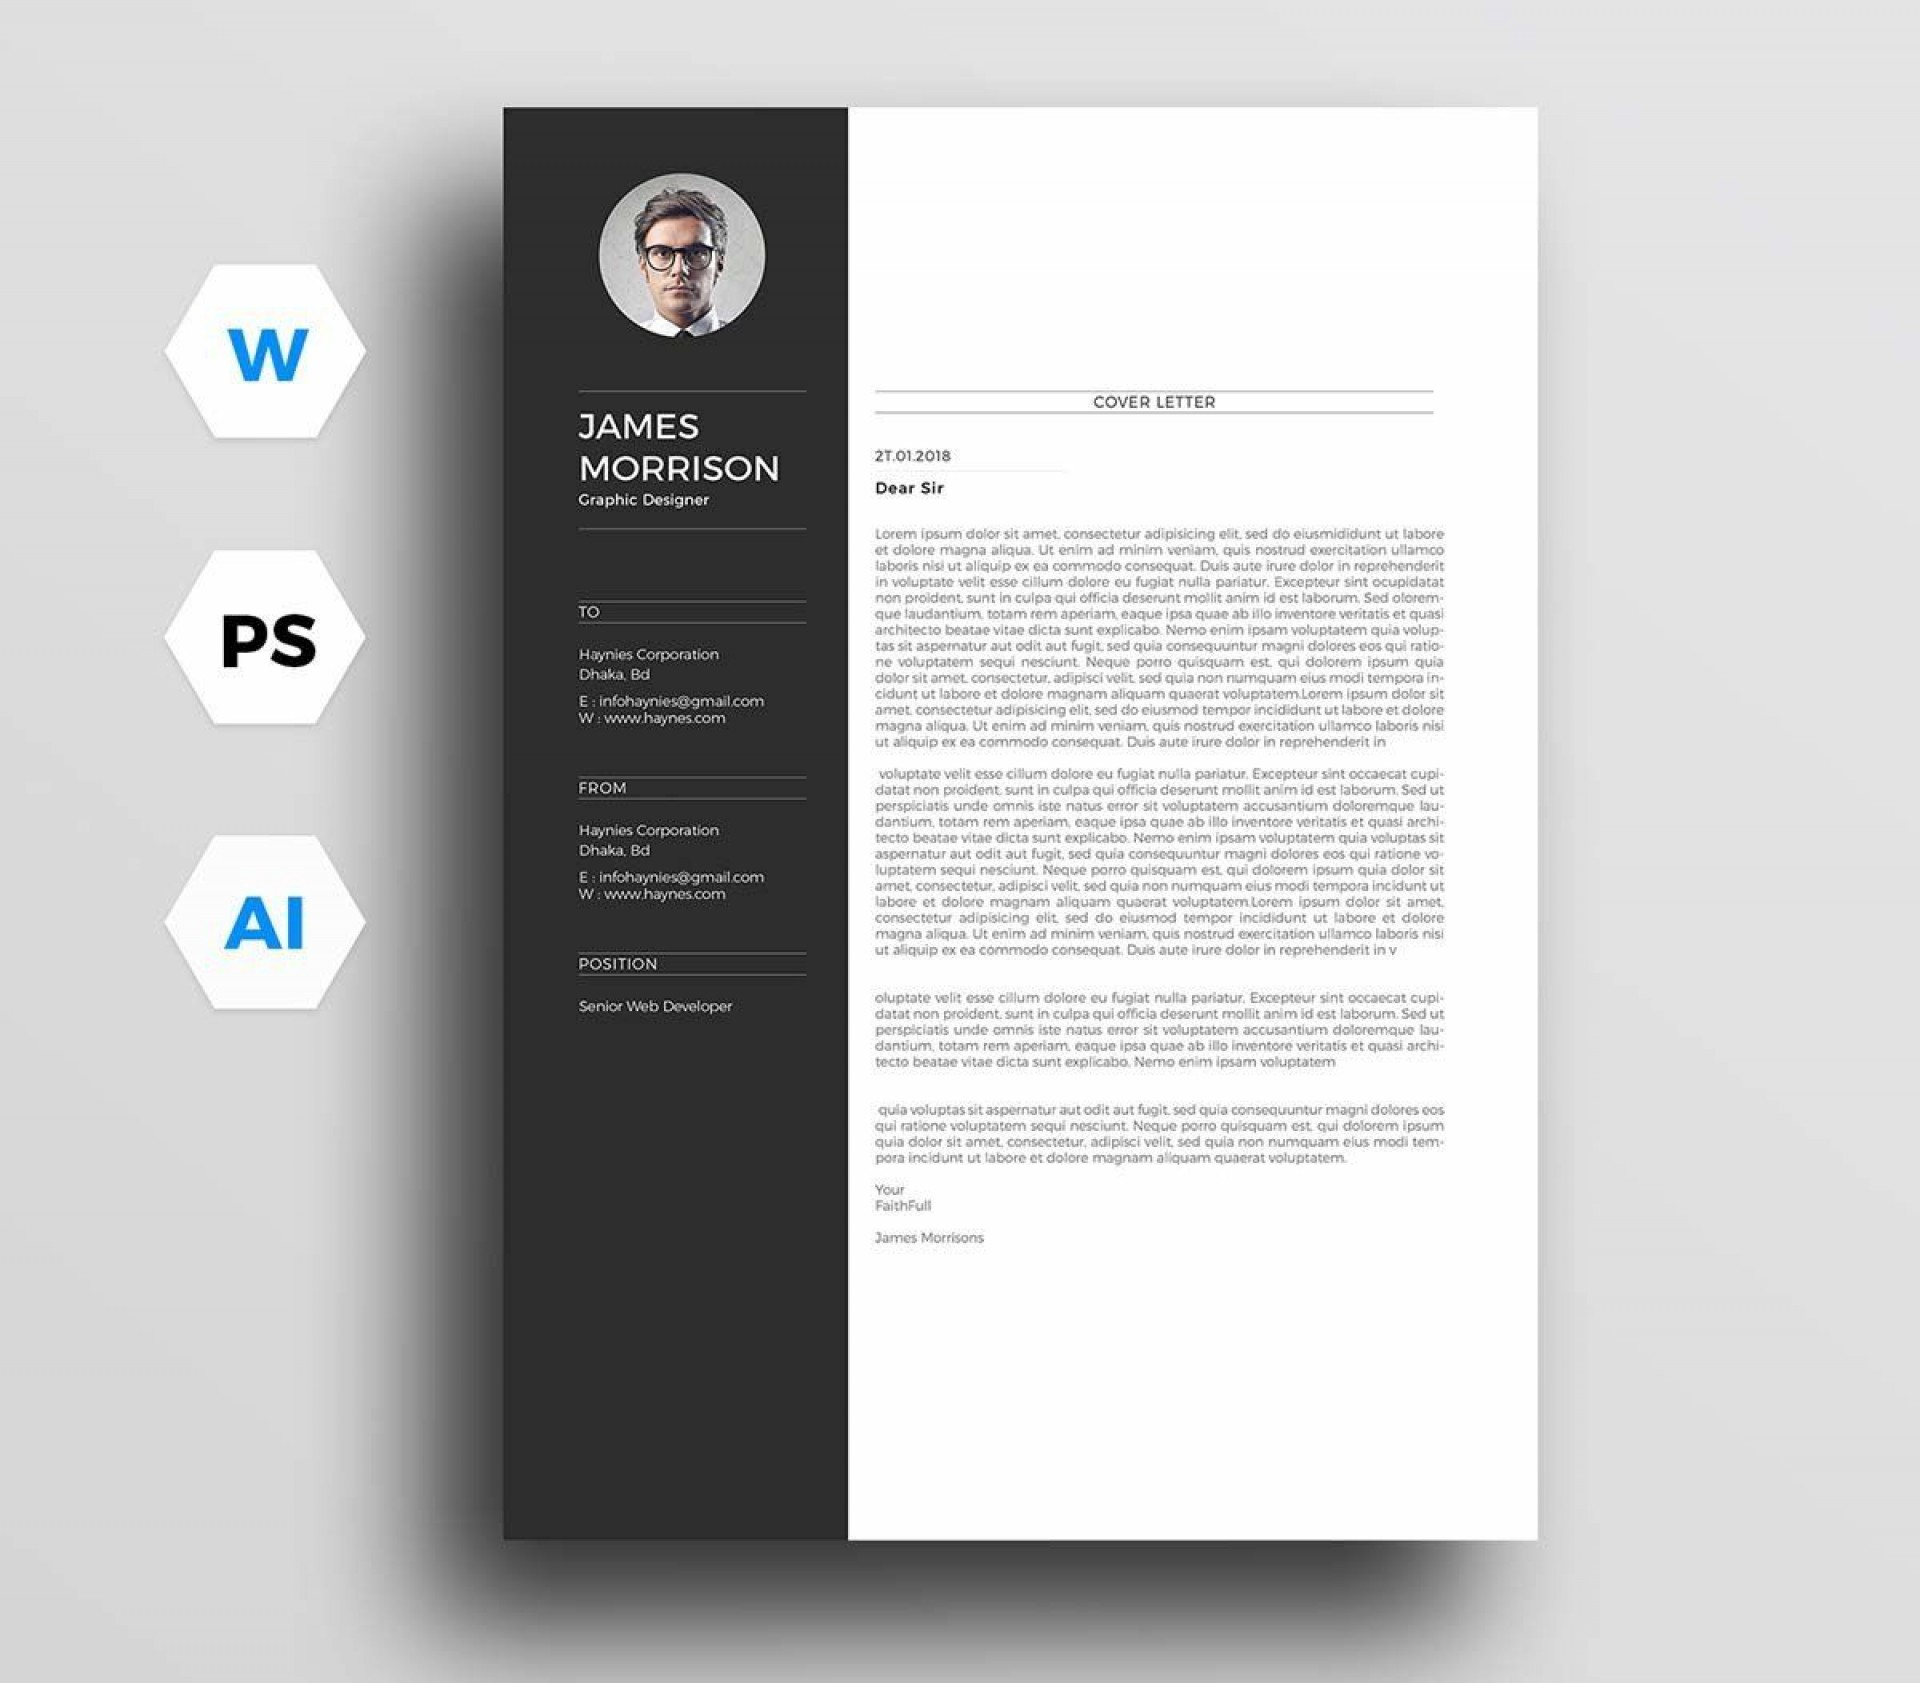 004 Breathtaking Window Resume Cover Letter Template Design  Templates1920